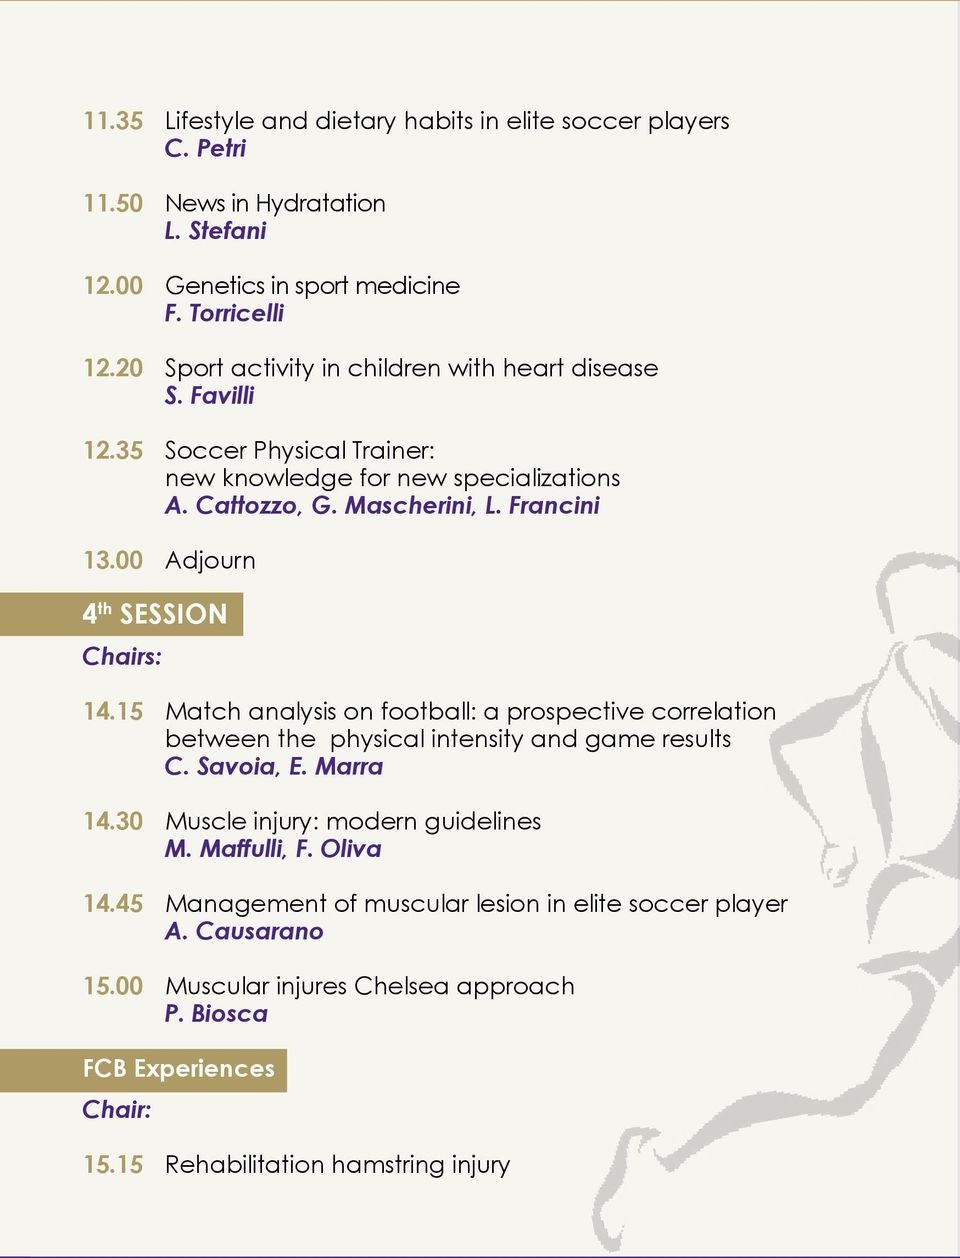 00 Adjourn 4 th SESSION Chairs: 14.15 Match analysis on football: a prospective correlation between the physical intensity and game results C. Savoia, E. Marra 14.